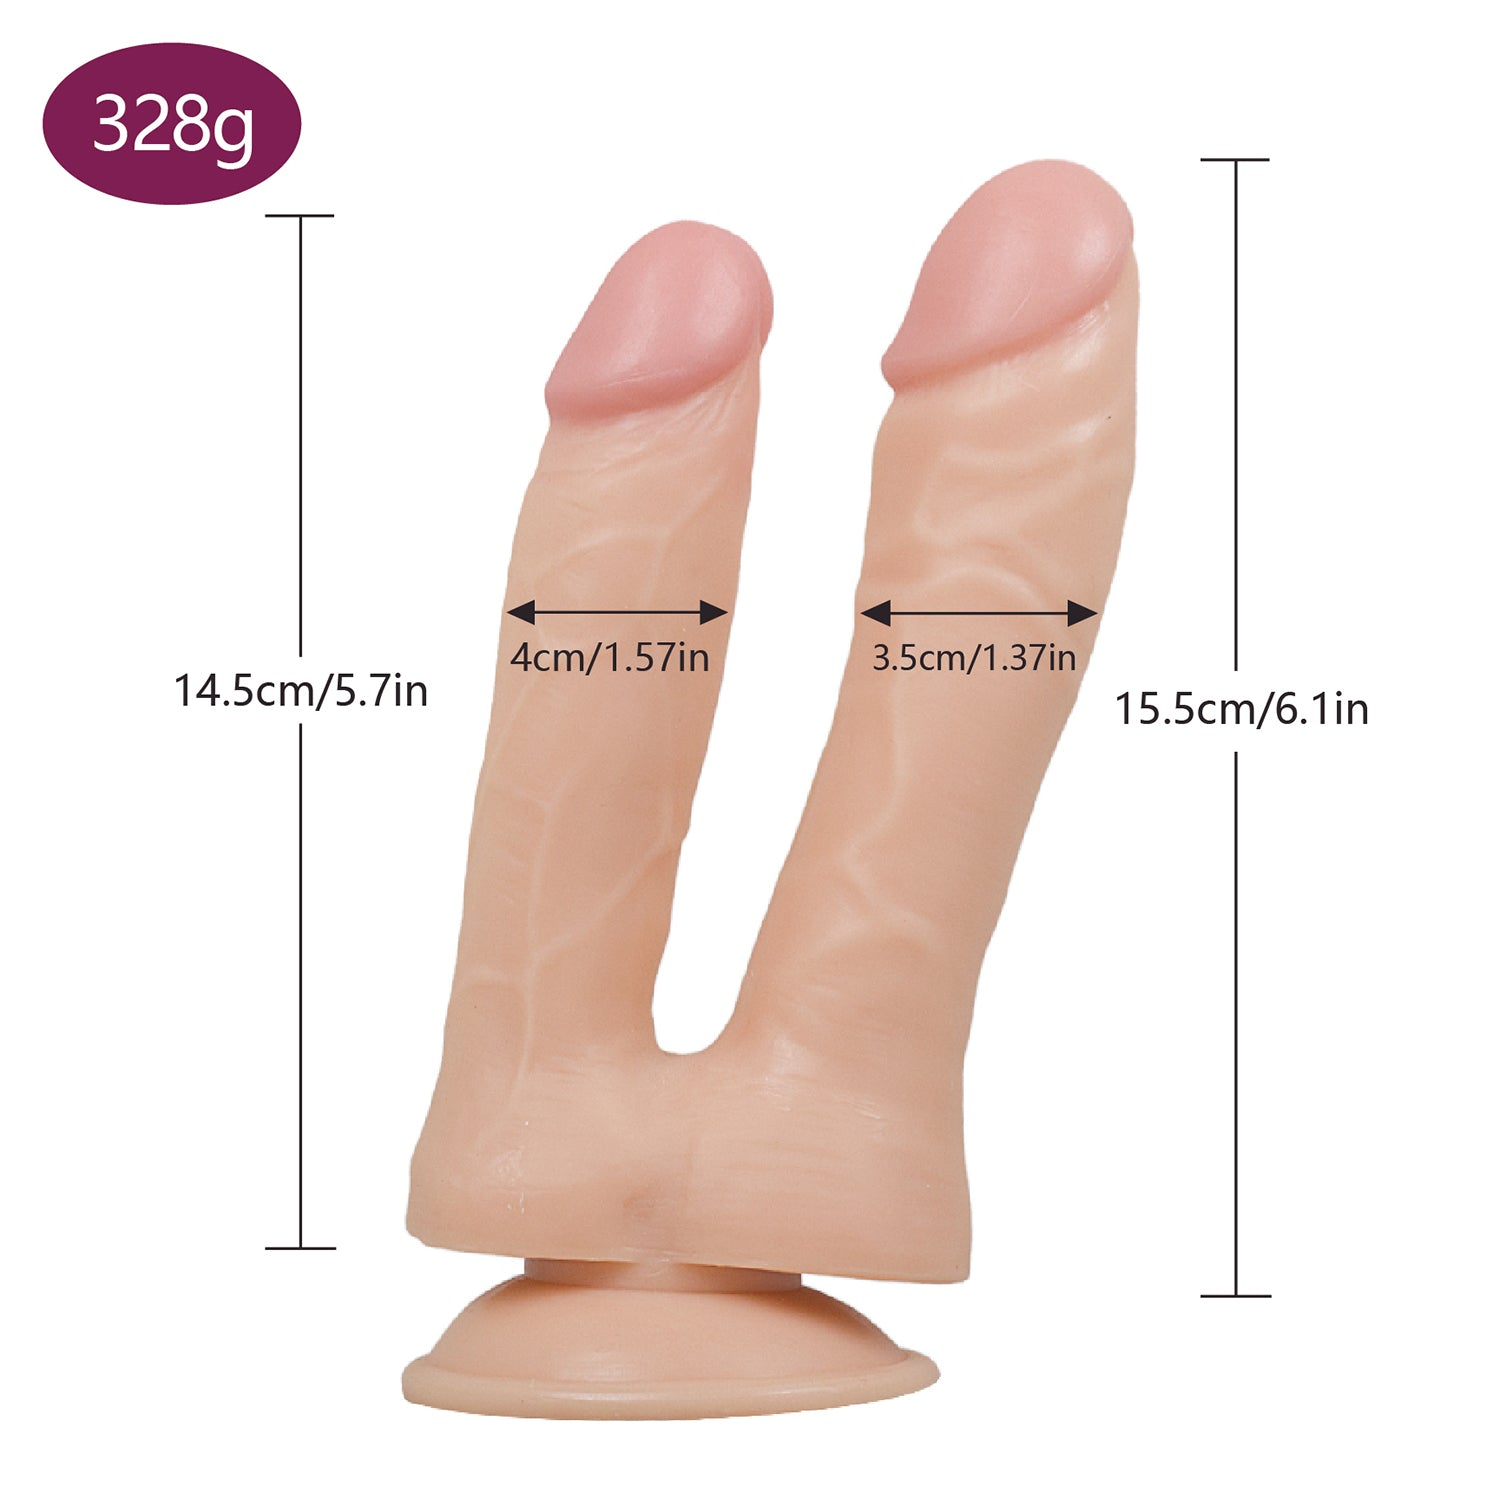 MD Fighter Realistic Double Ended Dildo - Nude